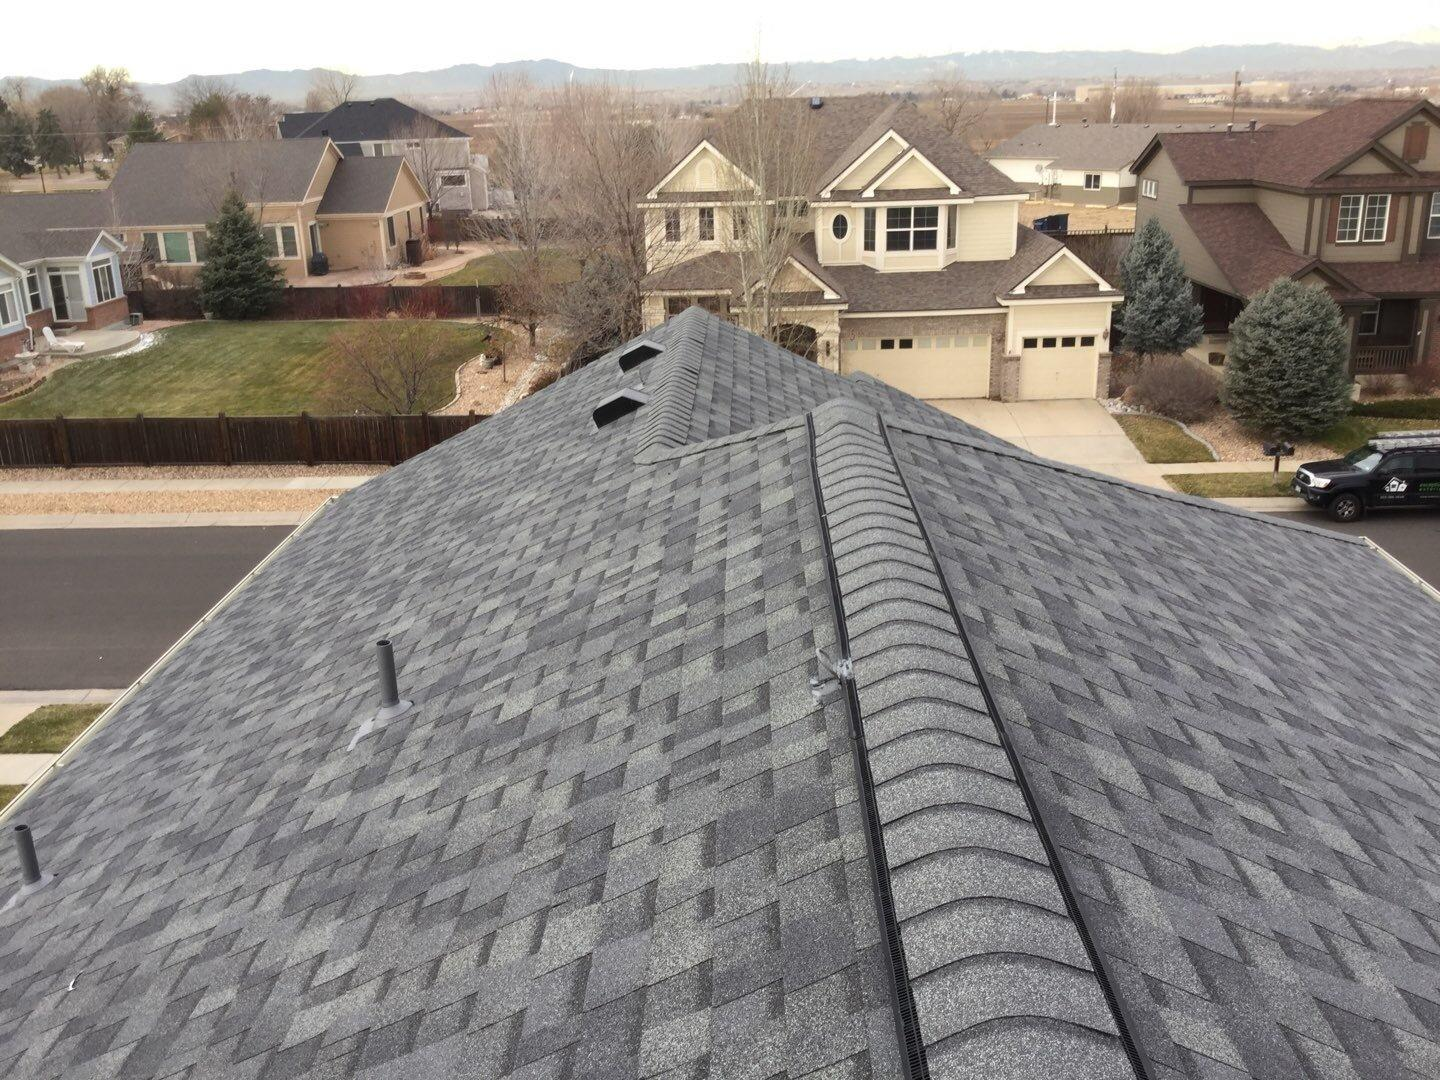 Impact Resistant Roof in Brighton, CO - After Photo